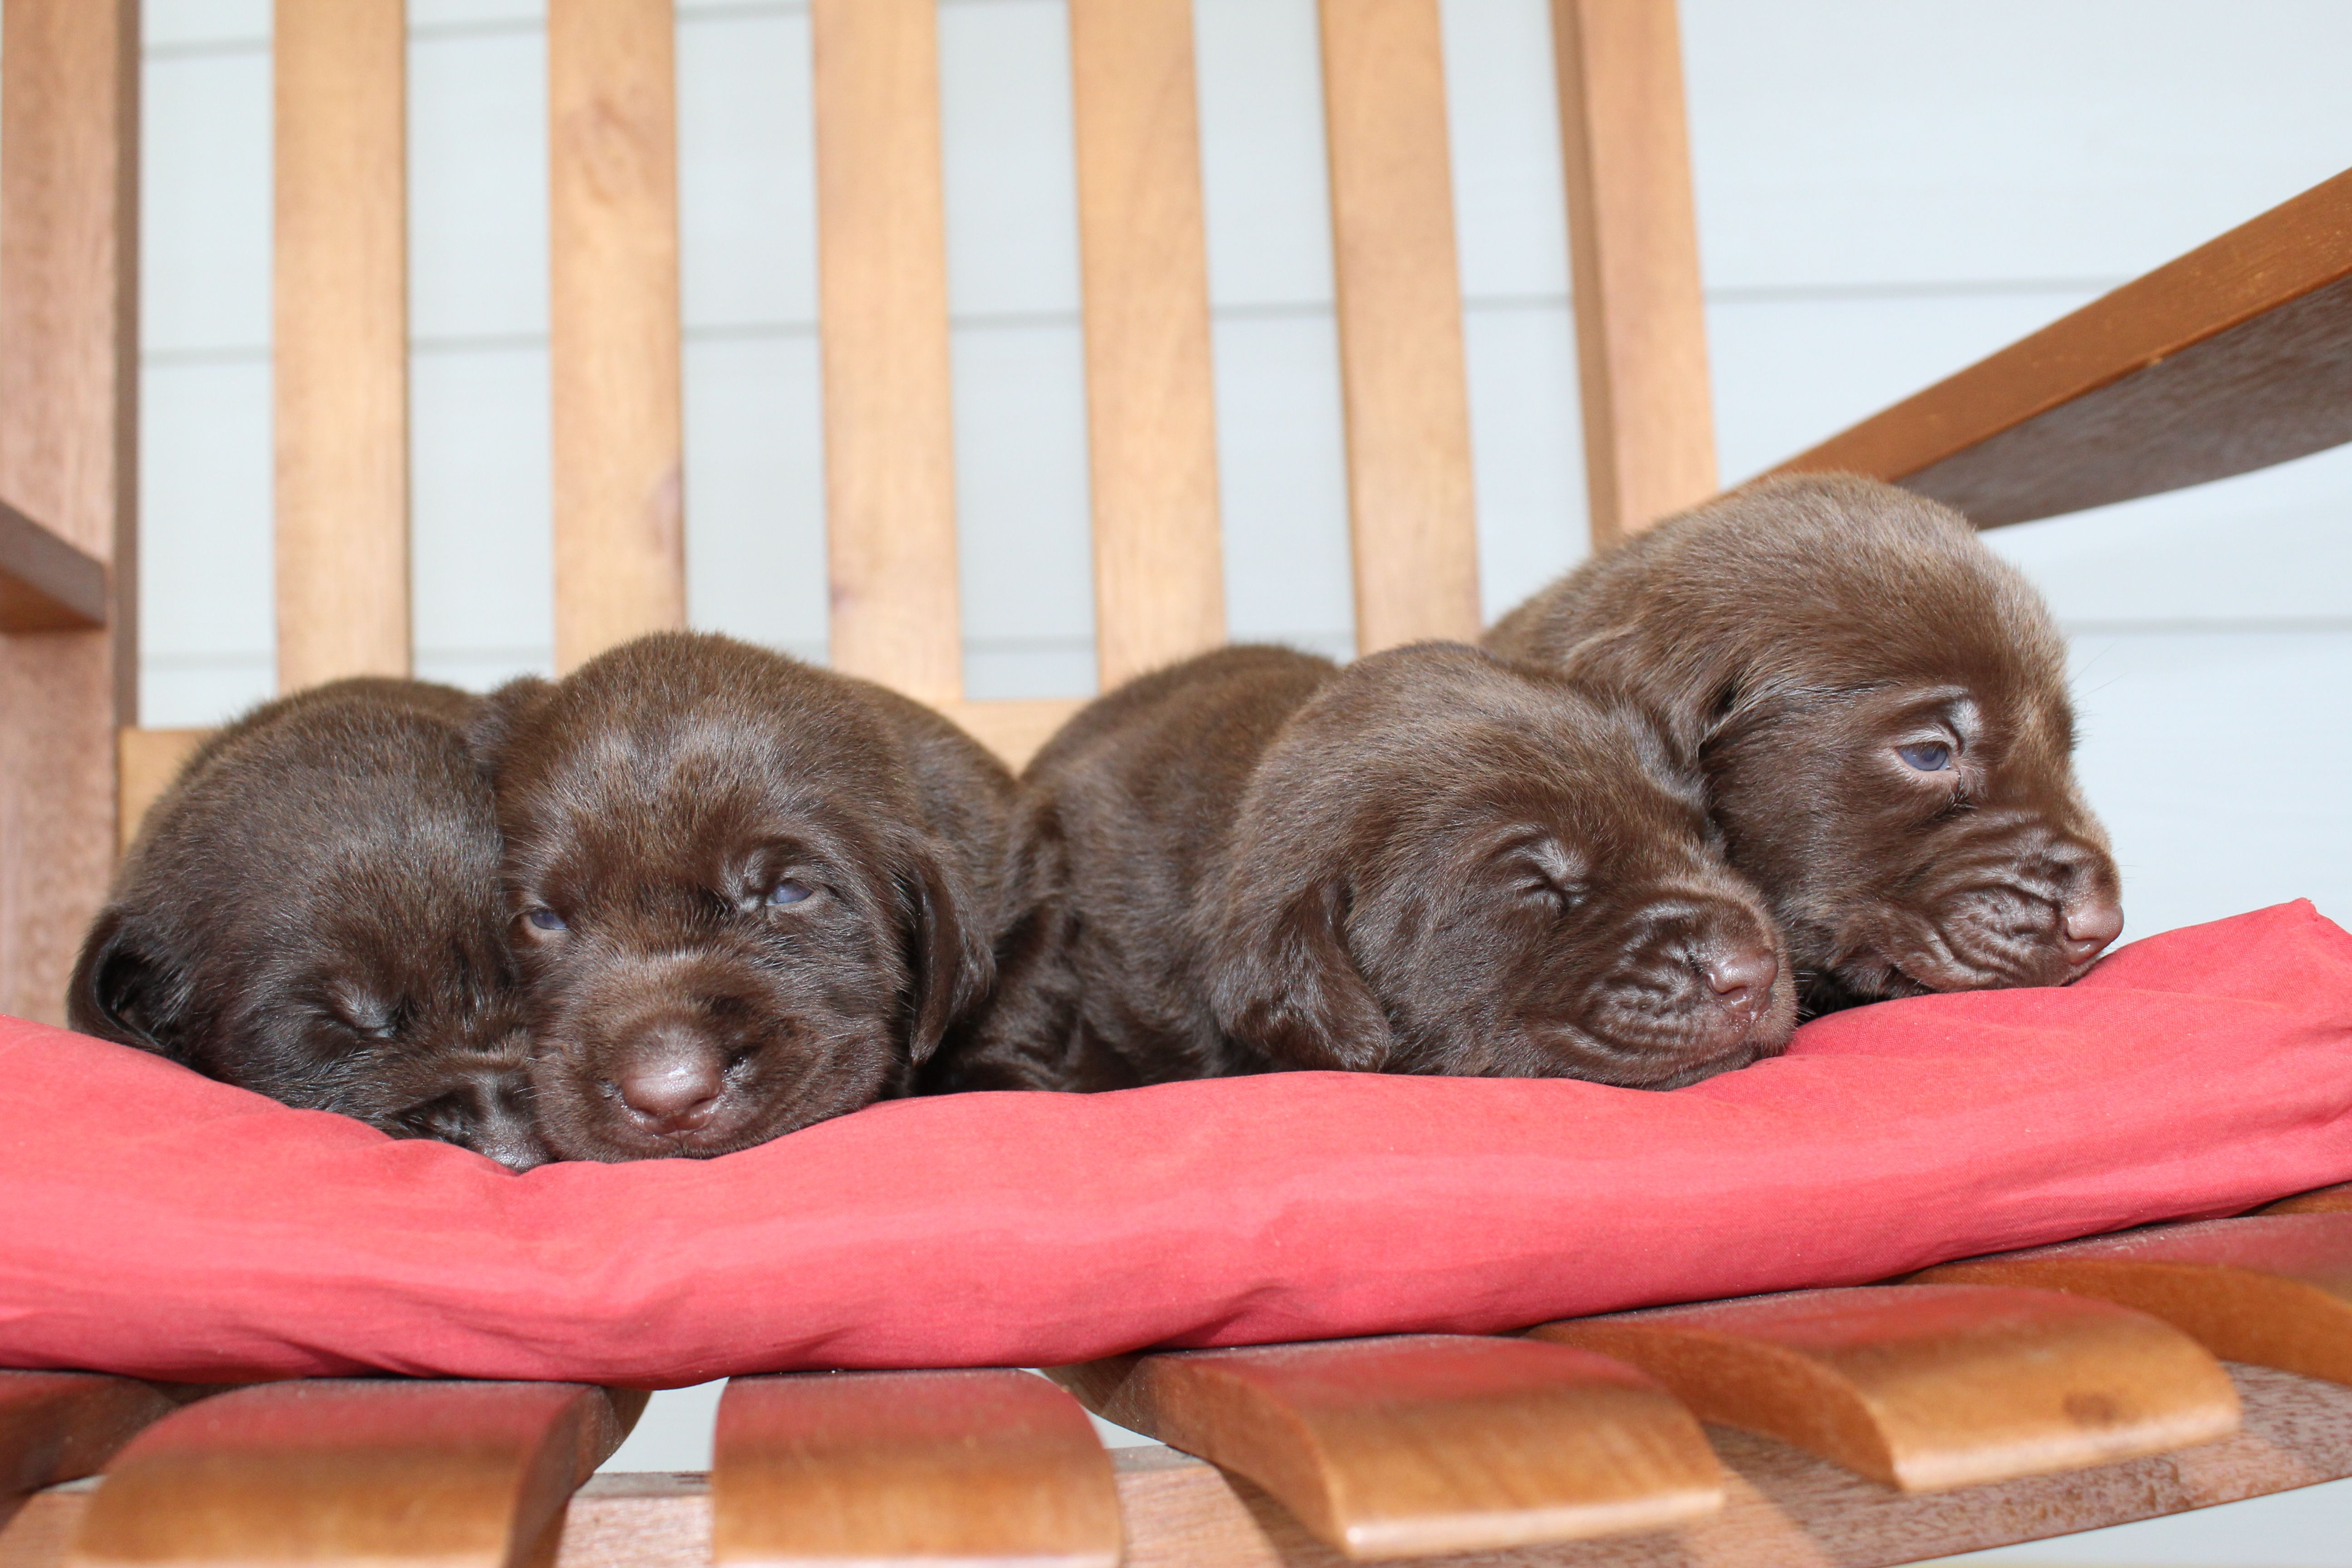 Abby's Litter Labrador Retriever puppies for sale in